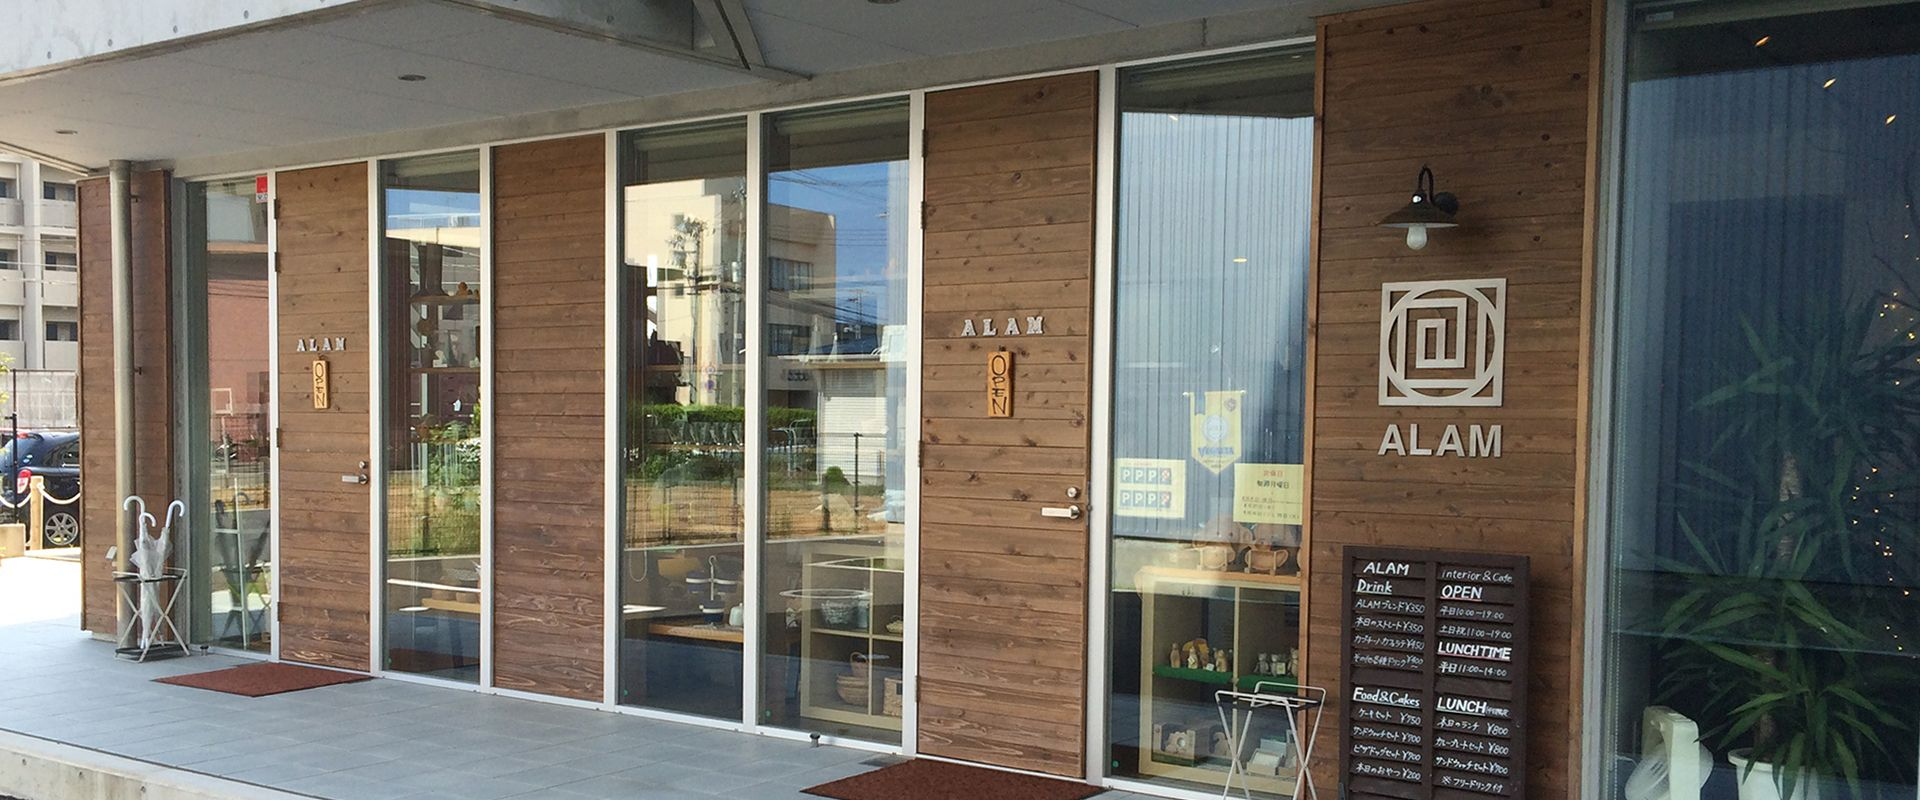 ALAM interior & Cafe外観